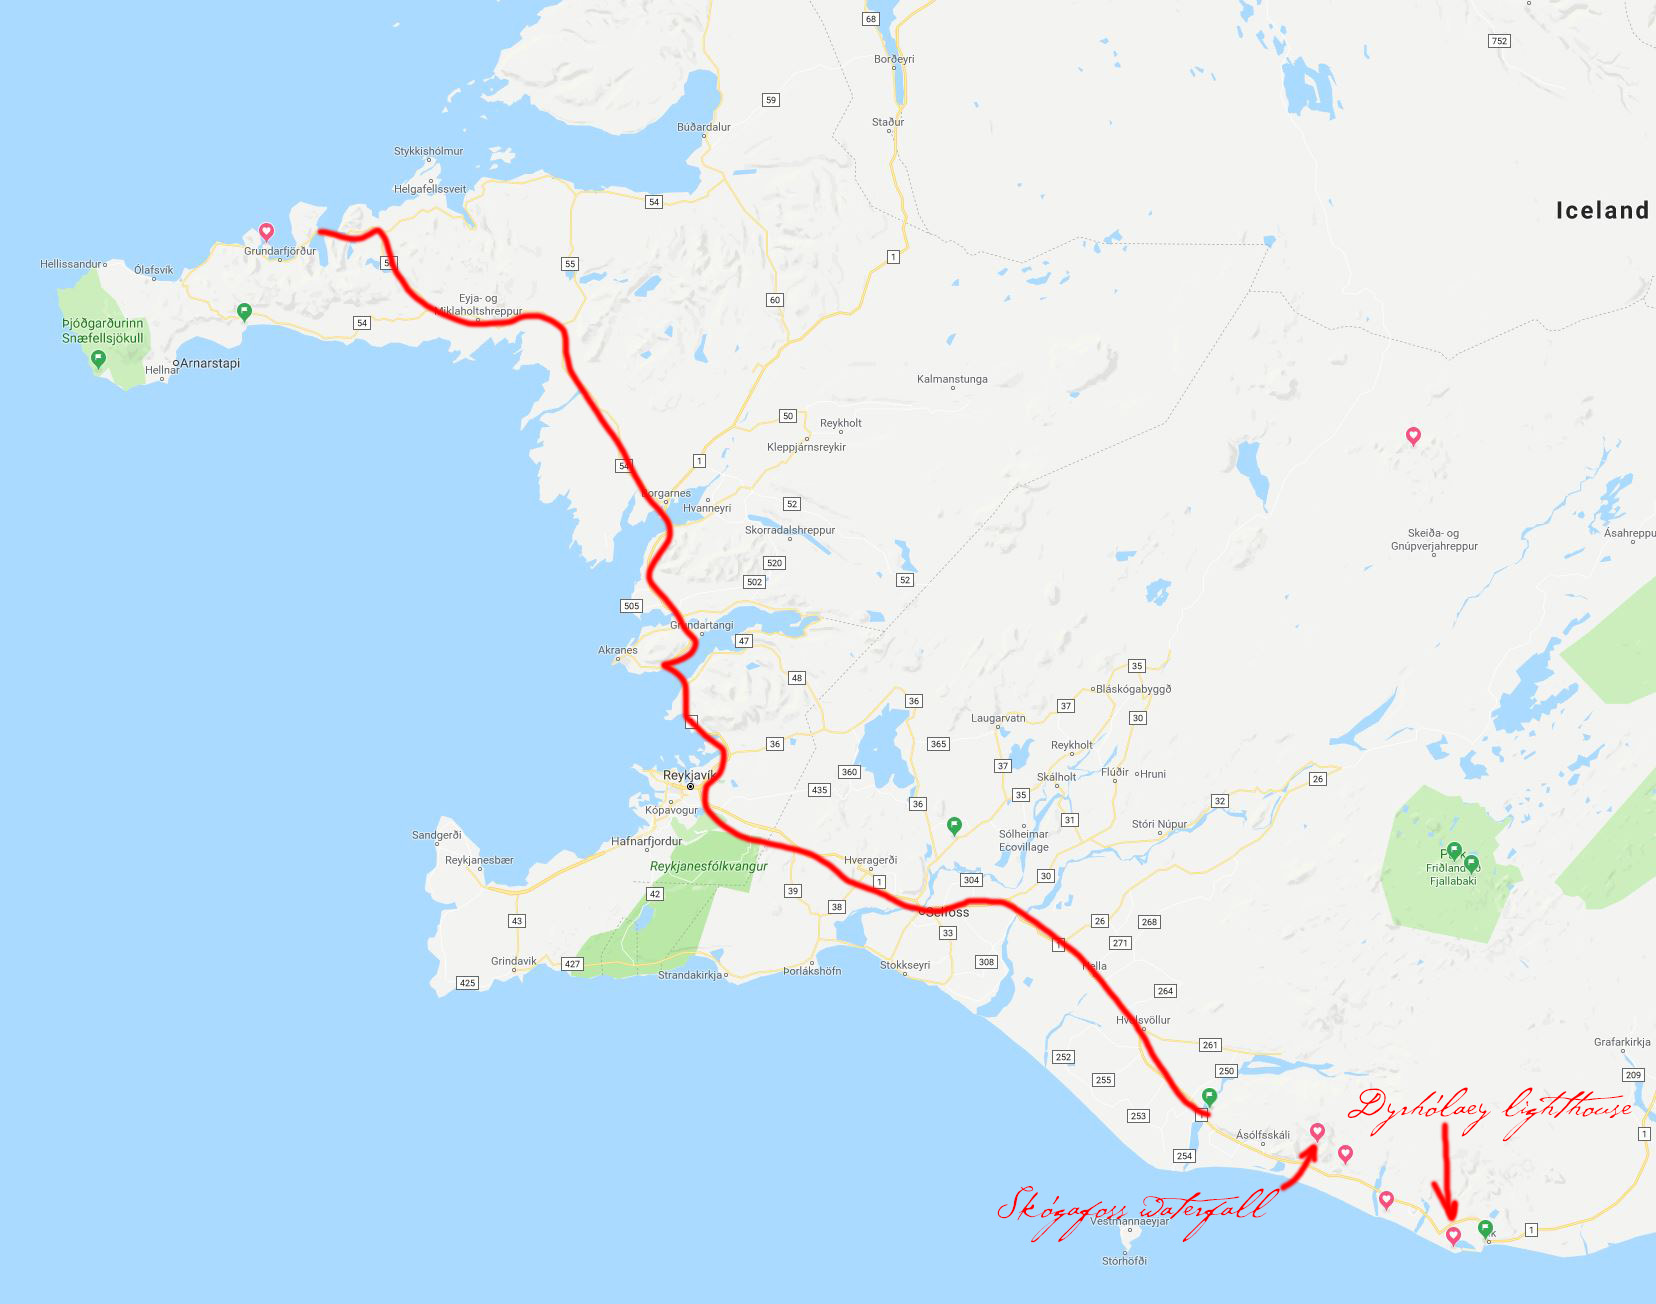 Map of south-west coast of Iceland and the road from Kirkjufellsfoss to Skógafoss